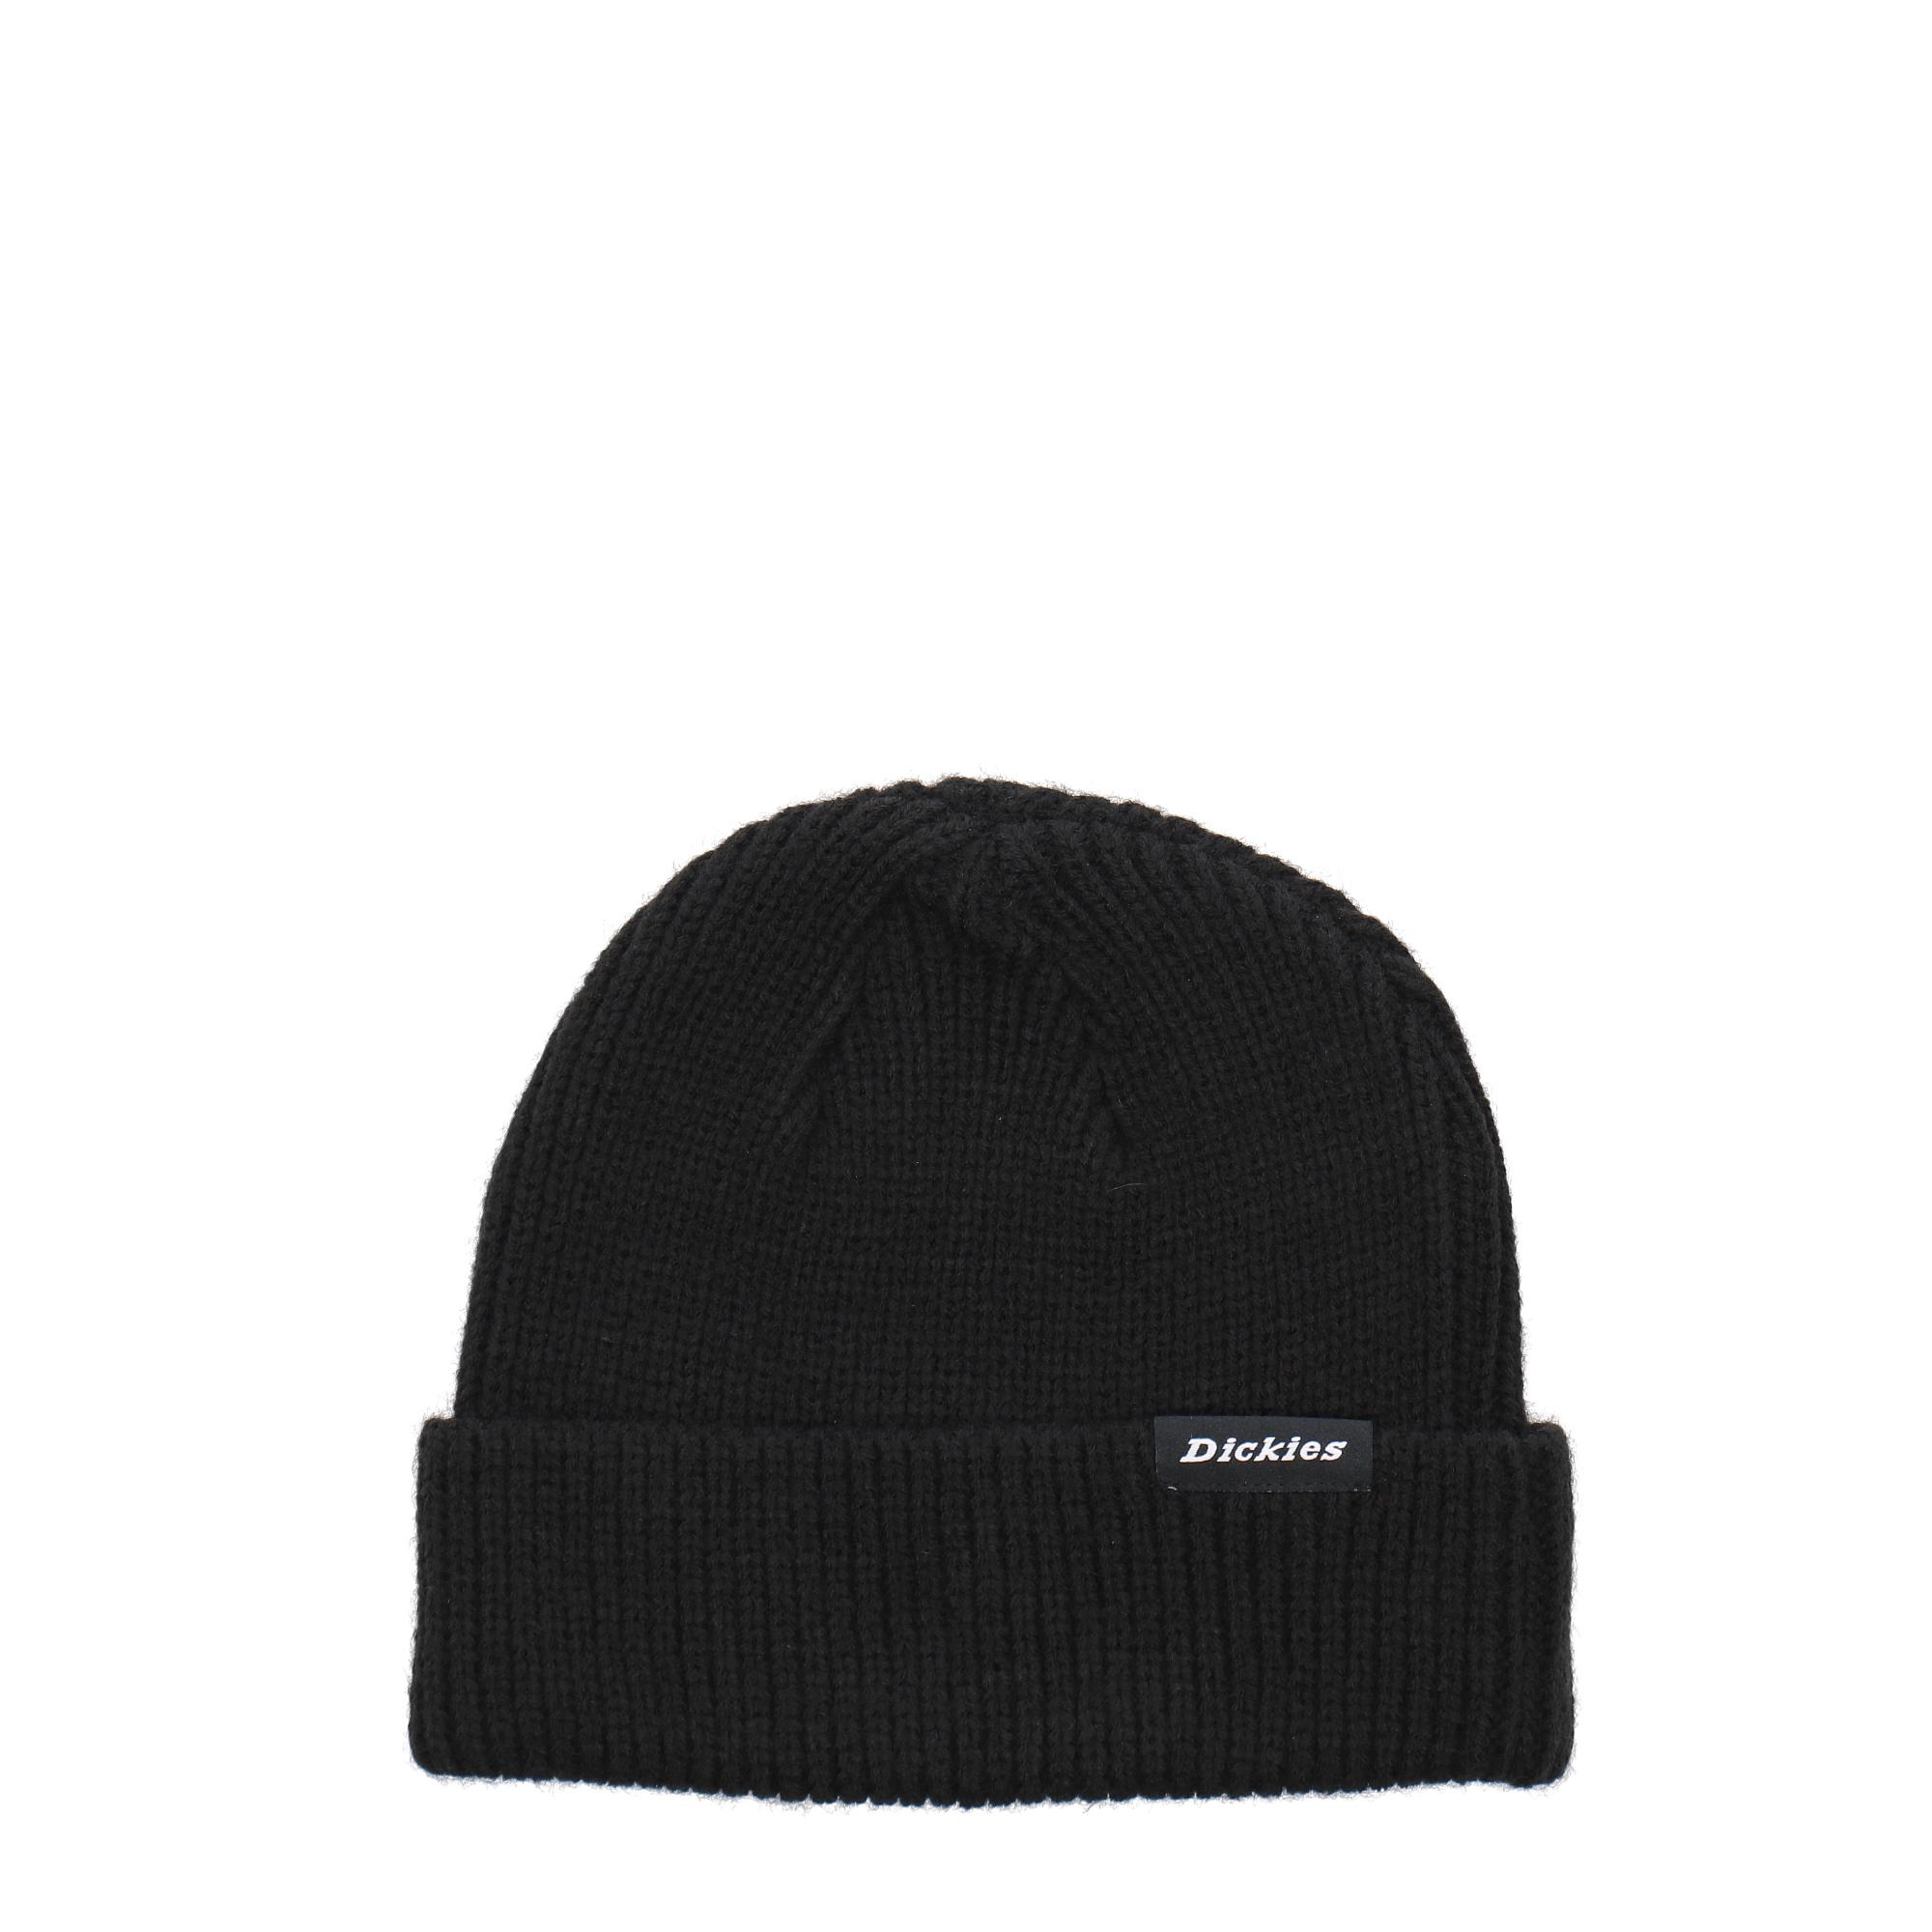 Dickies Woodworth Beanie Black